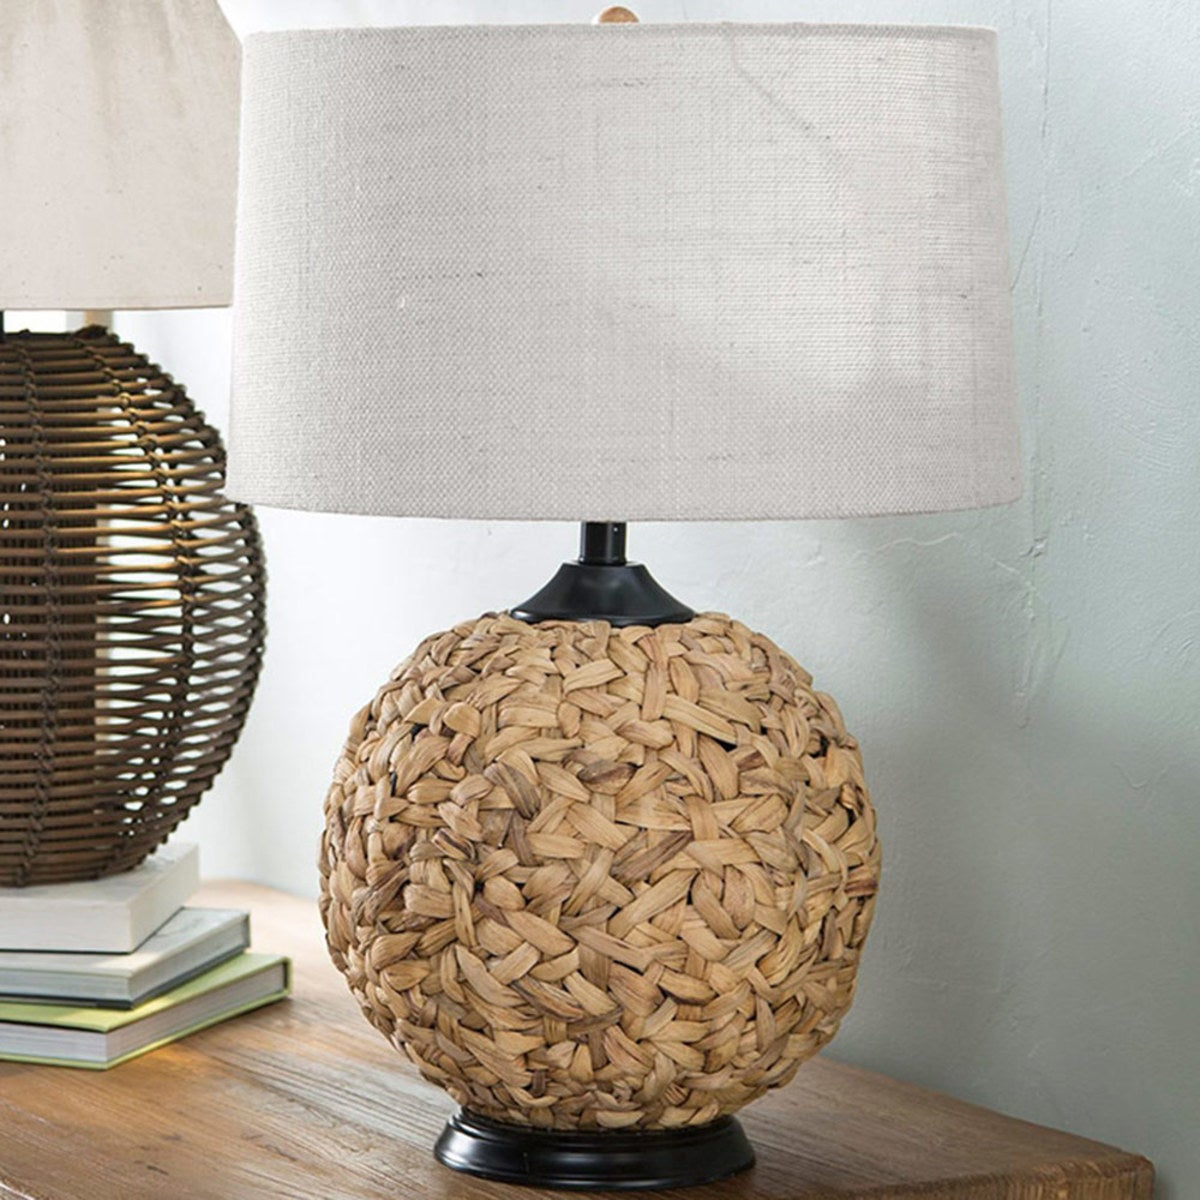 Woven Seagrass Table Lamp